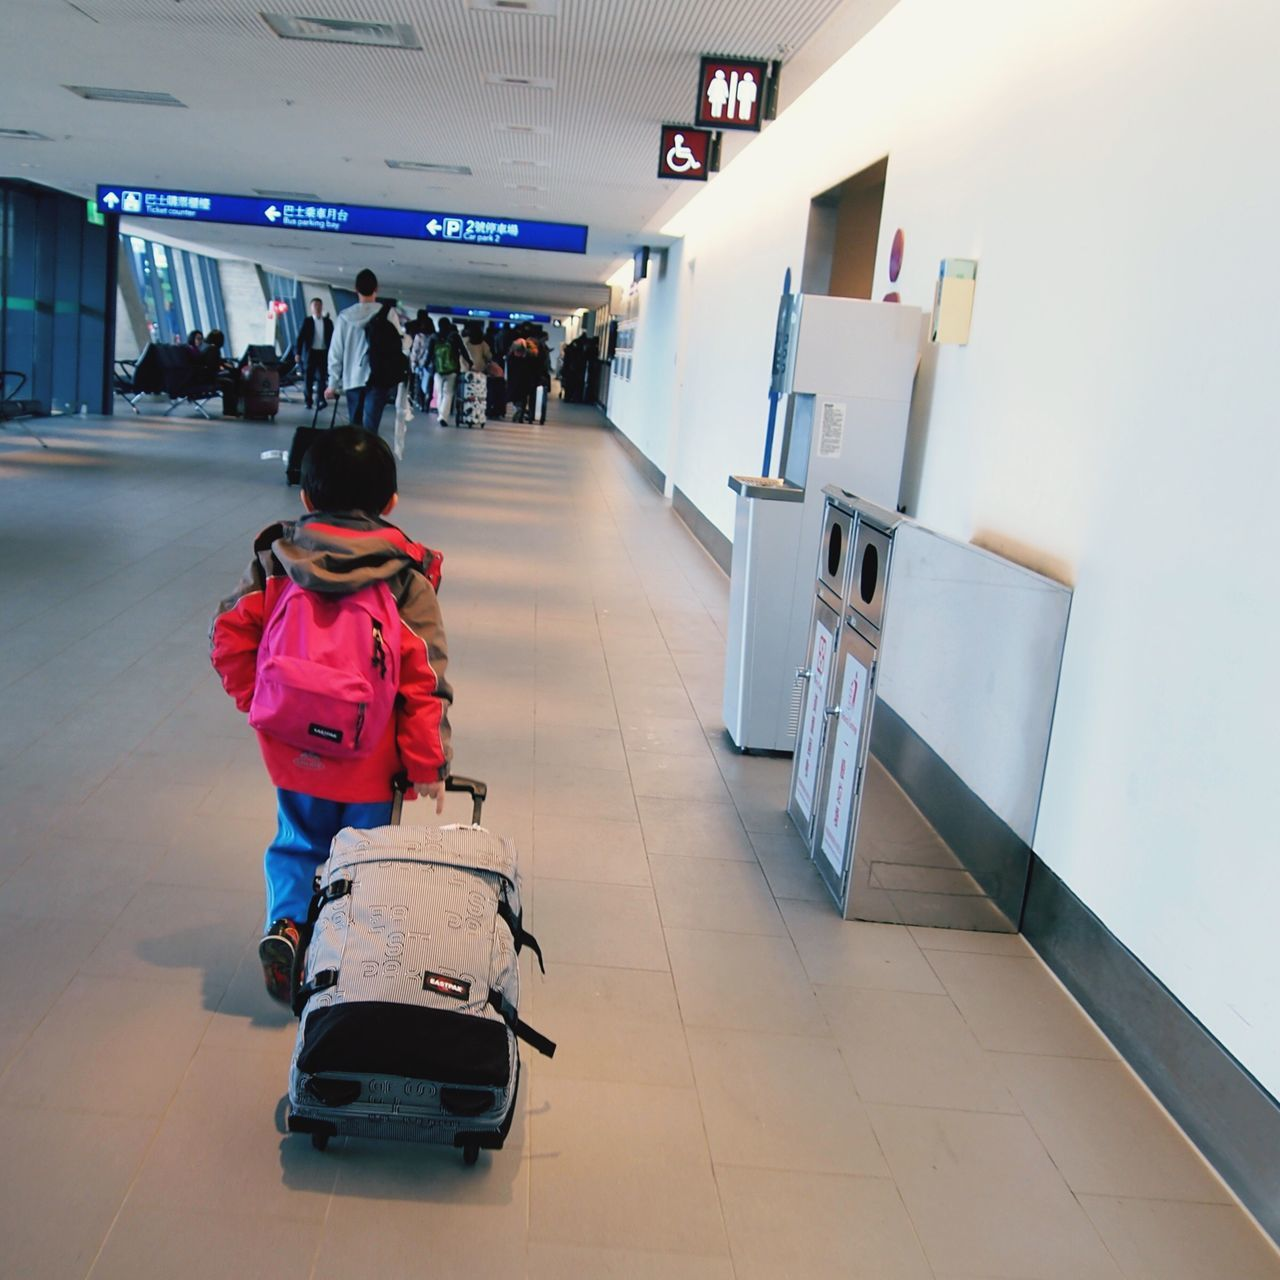 Little Big Boy... Full Length Real People Lifestyles Leisure Activity One Person Indoors  Day People Transportation Mode Of Transport Airport Travelling Photography Travel Plane Little Boy Children Luggage Carry On Taipei,Taiwan